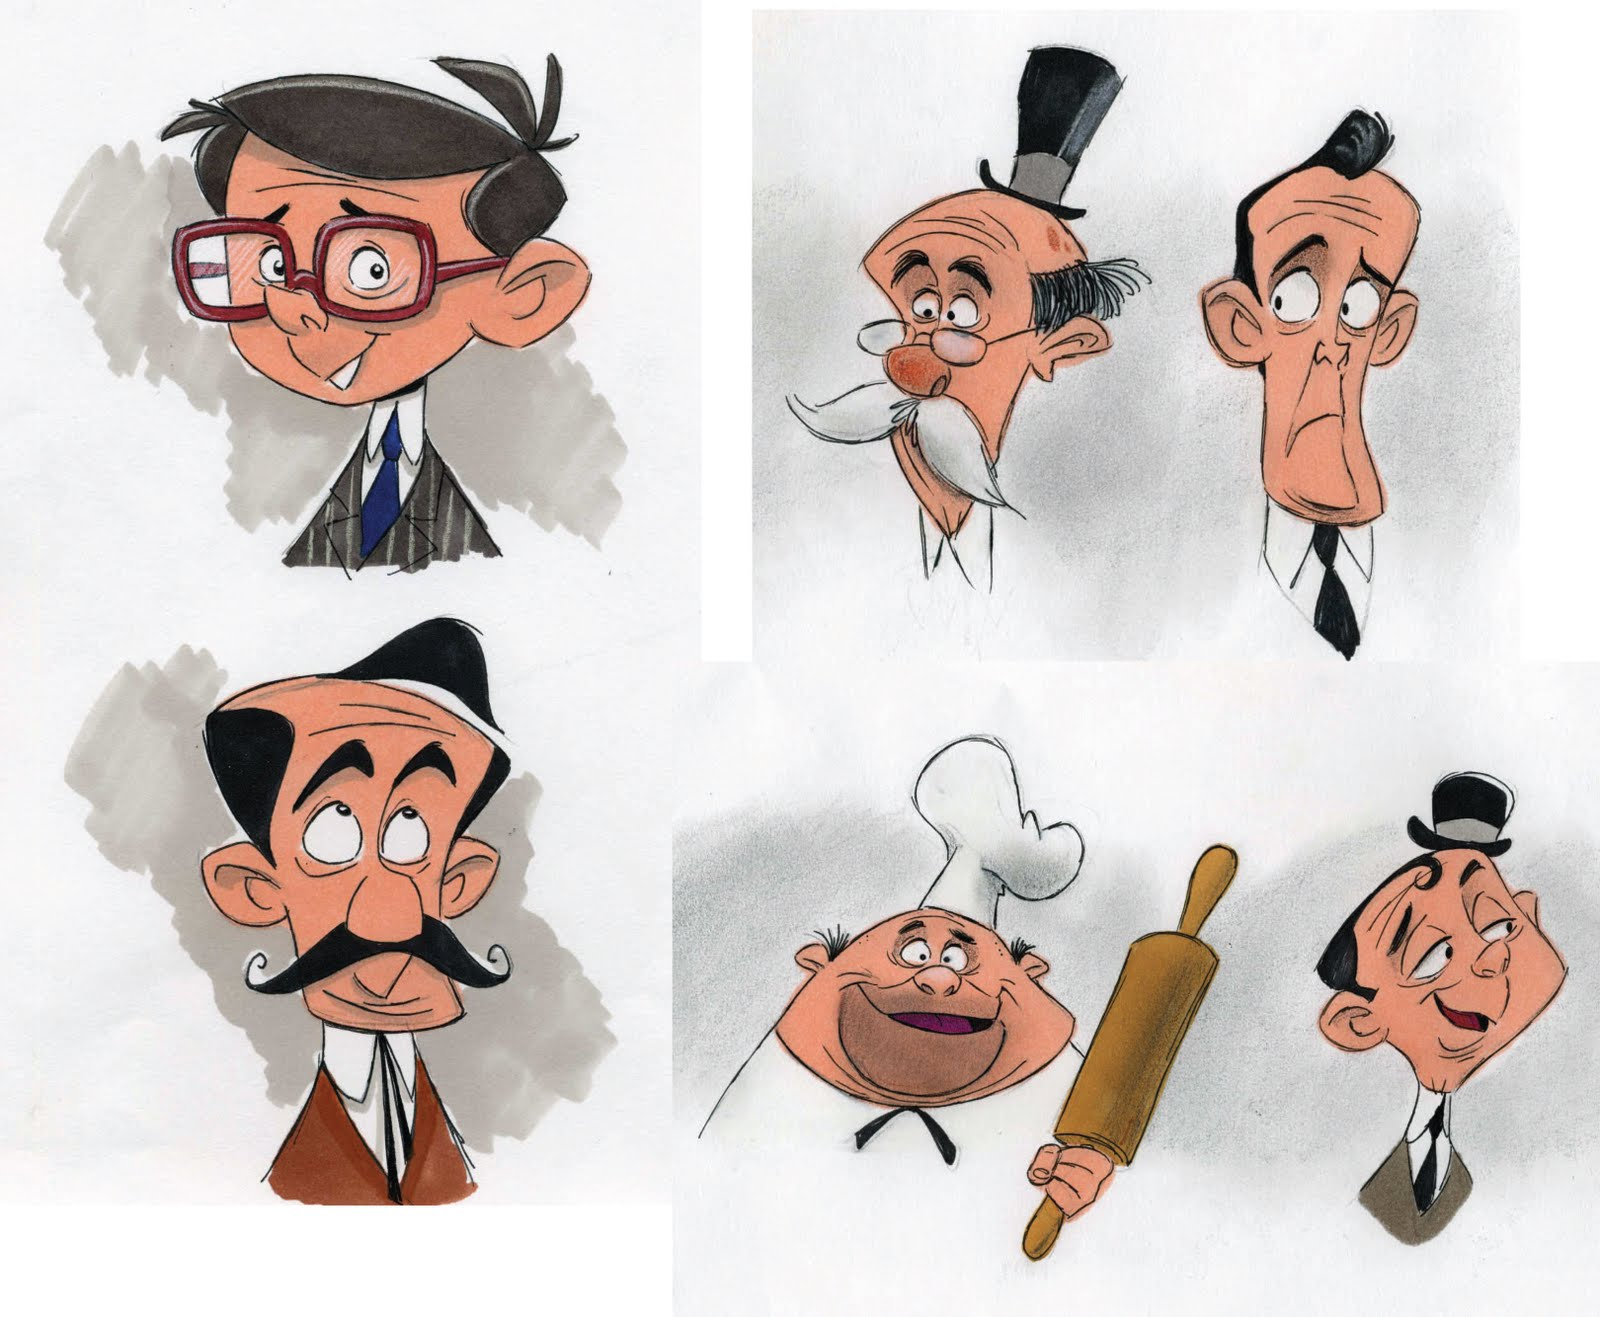 Character Design Site : Animationholics designs character